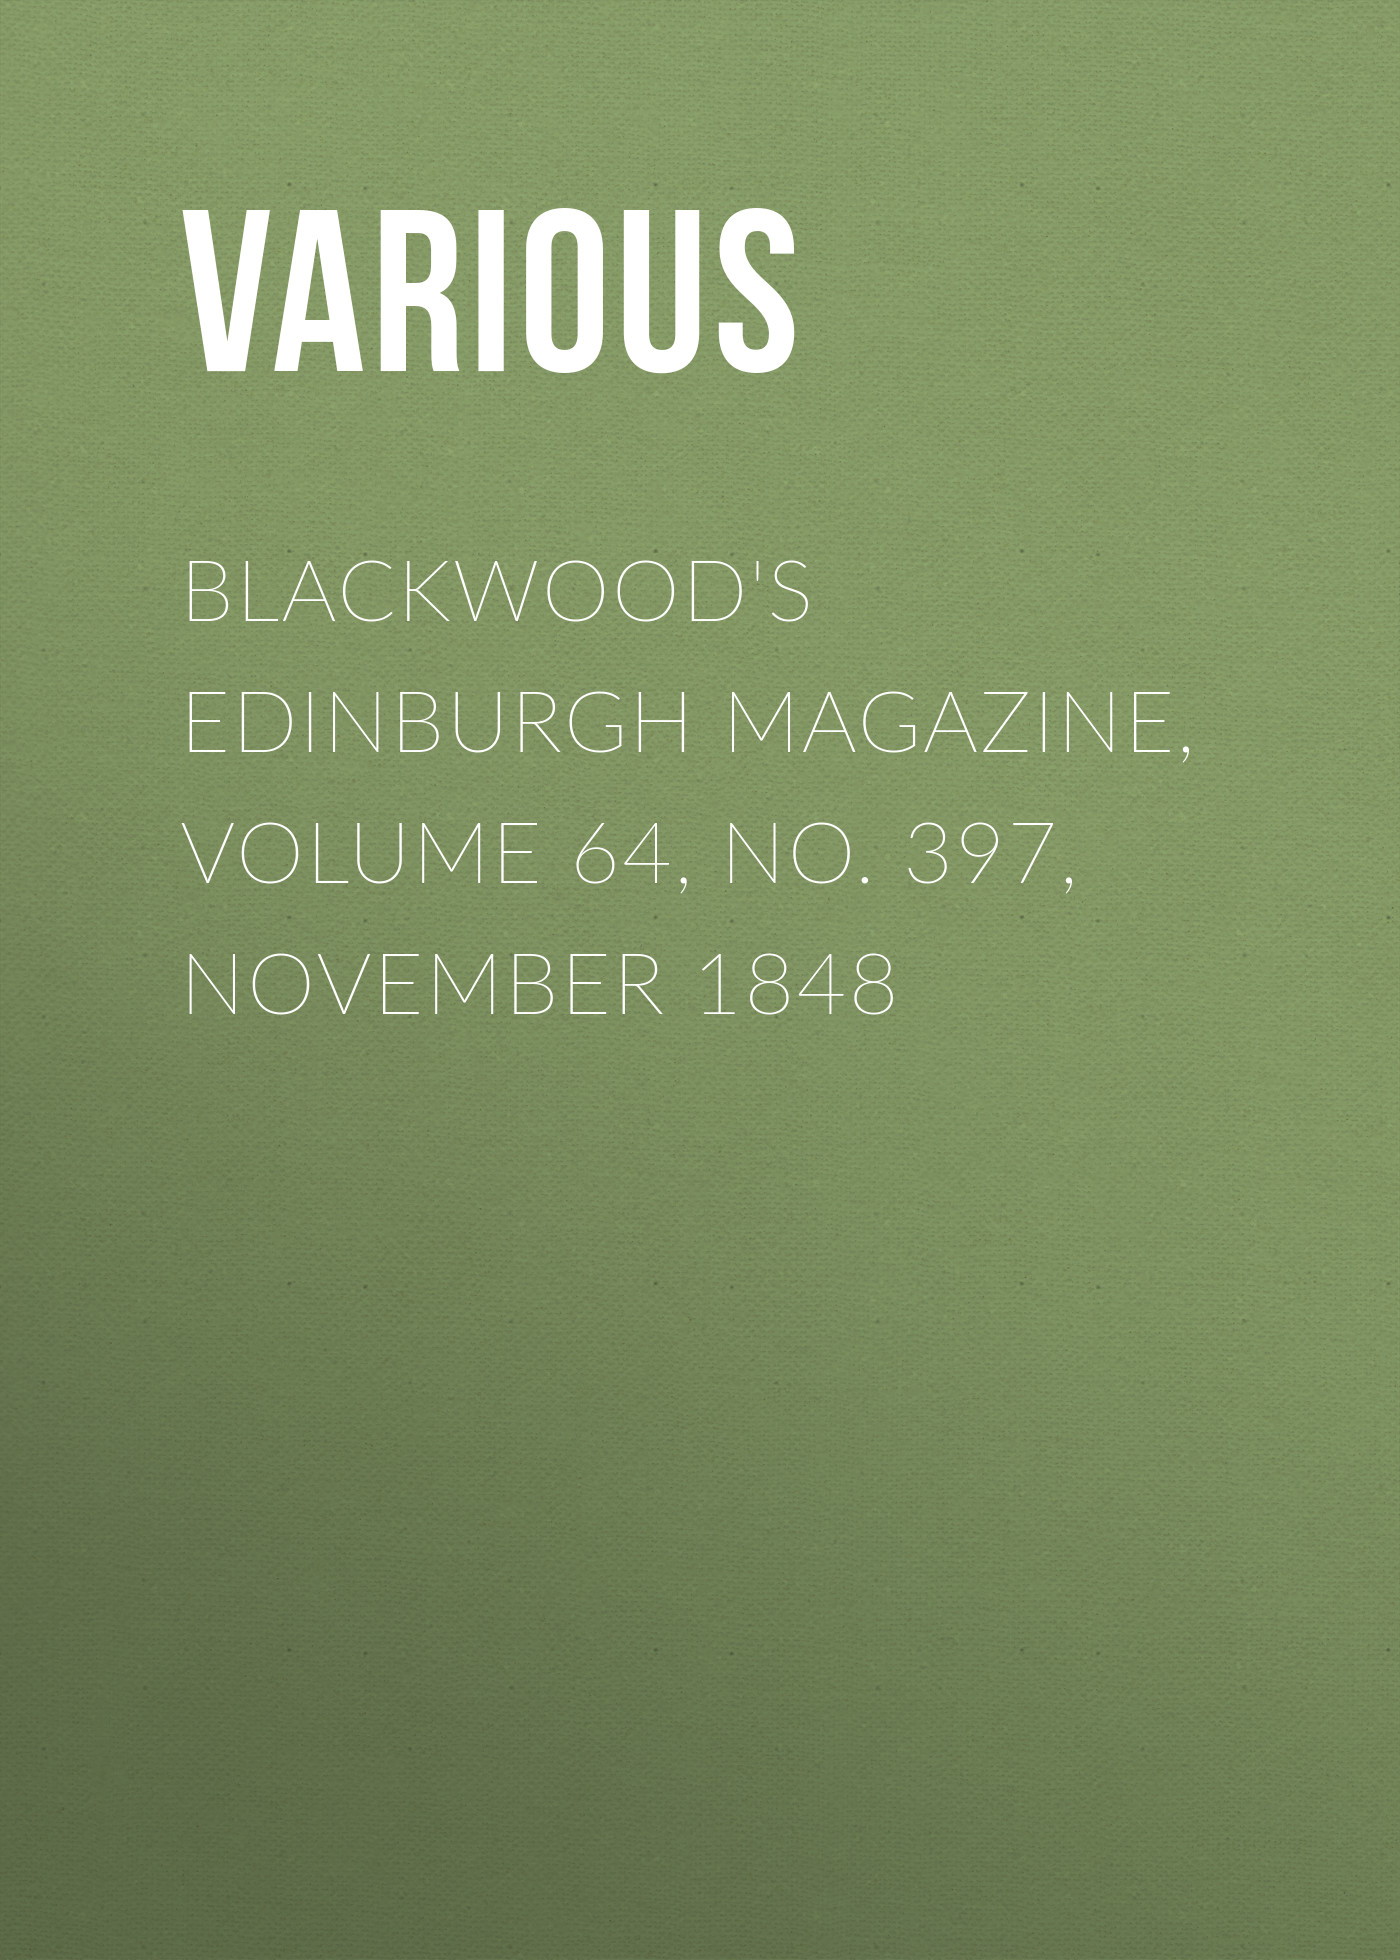 Various Blackwood's Edinburgh Magazine, Volume 64, No. 397, November 1848 цена